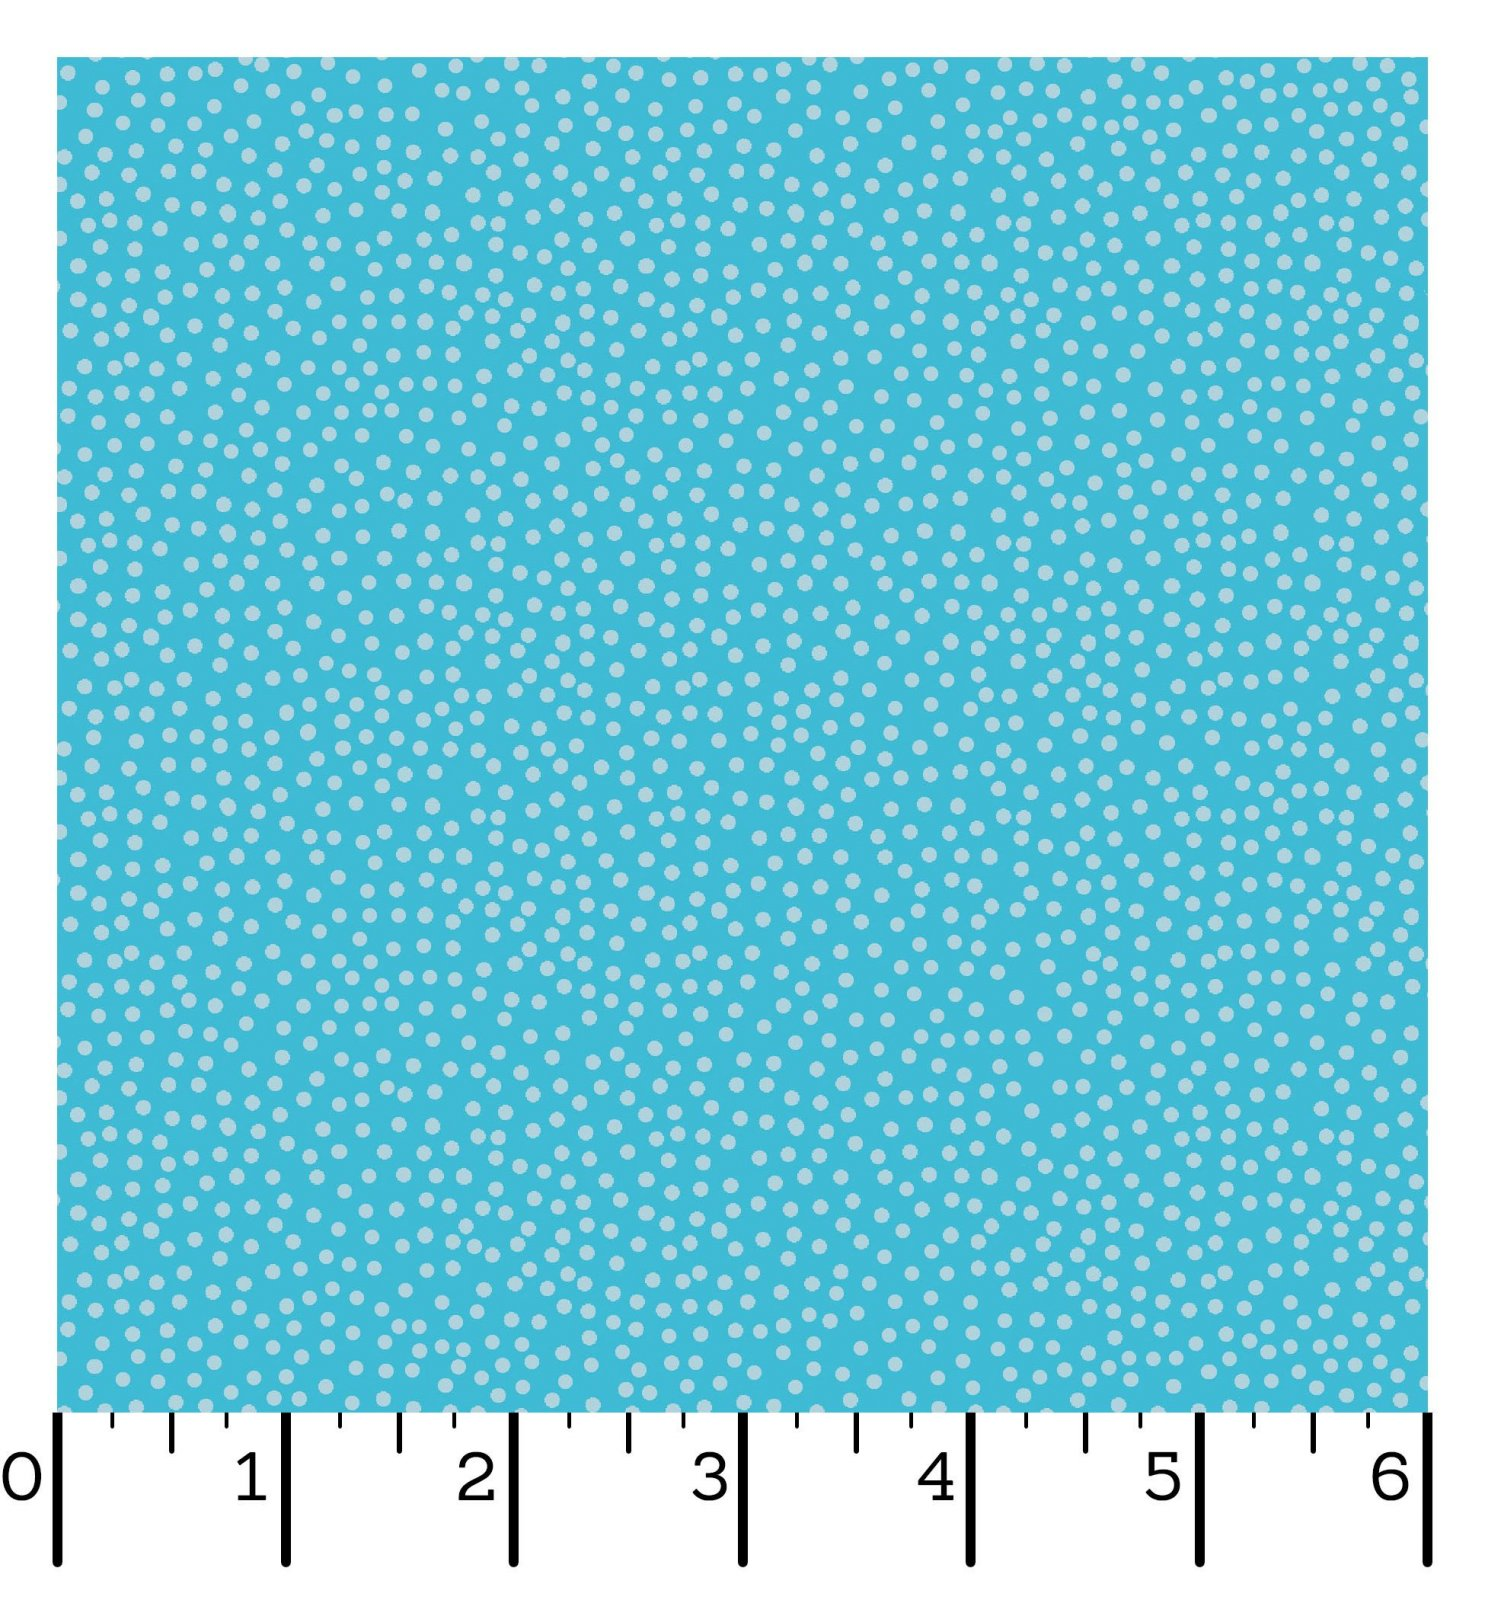 EESC-D10007 Q - MEADOW EDGE BY MAYWOOD STUDIO BLENDER DOT AQUA - ARRIVING IN MAY 2021